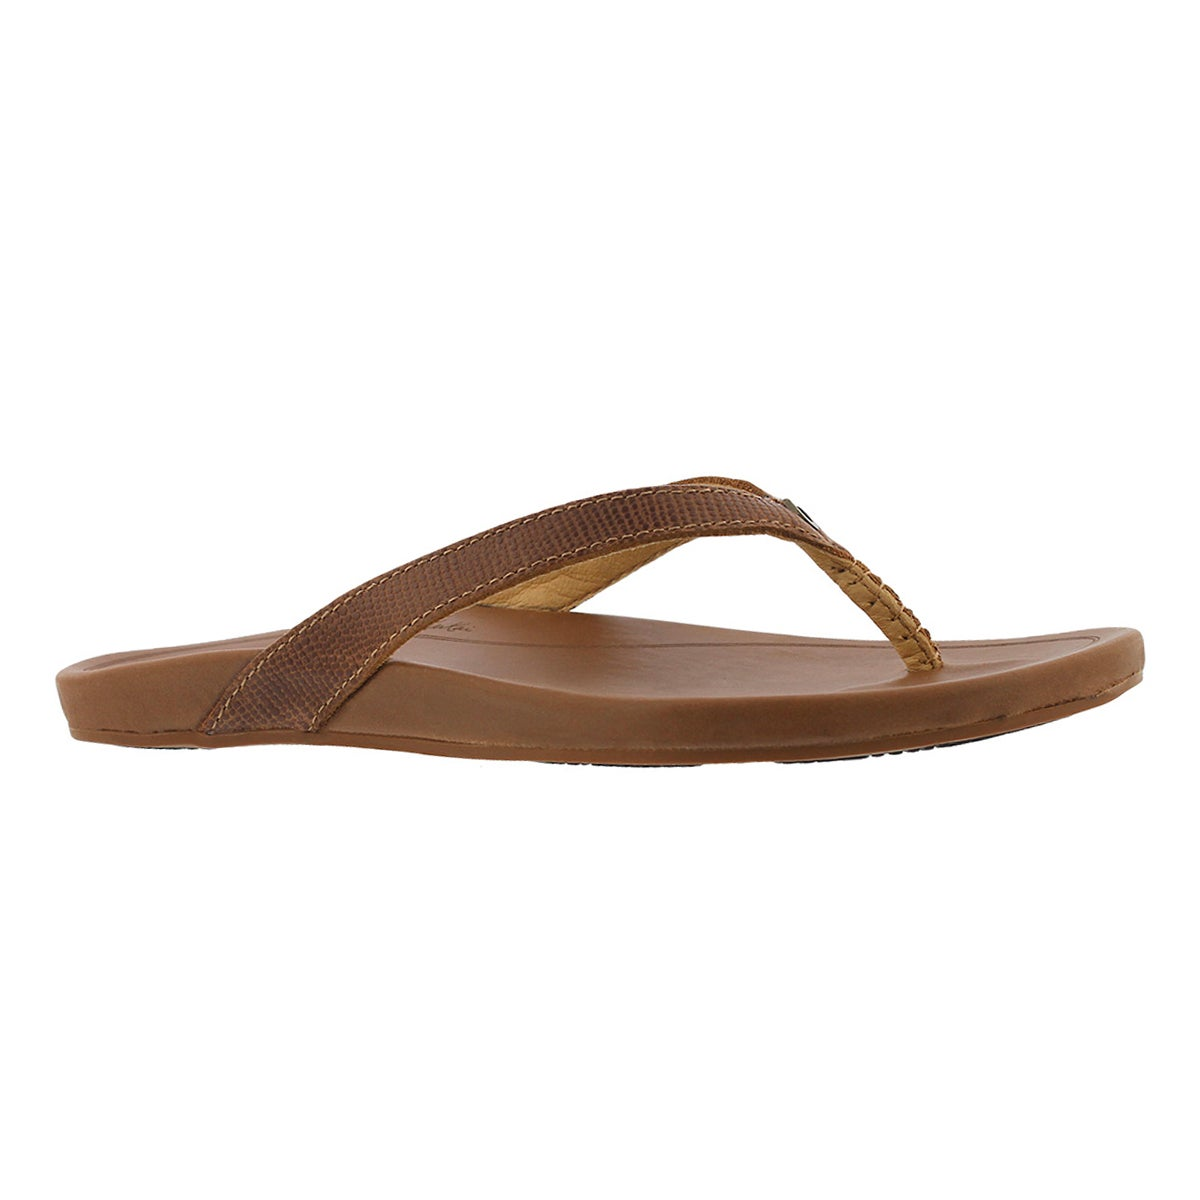 Women's HI'ONA tan thong sandals